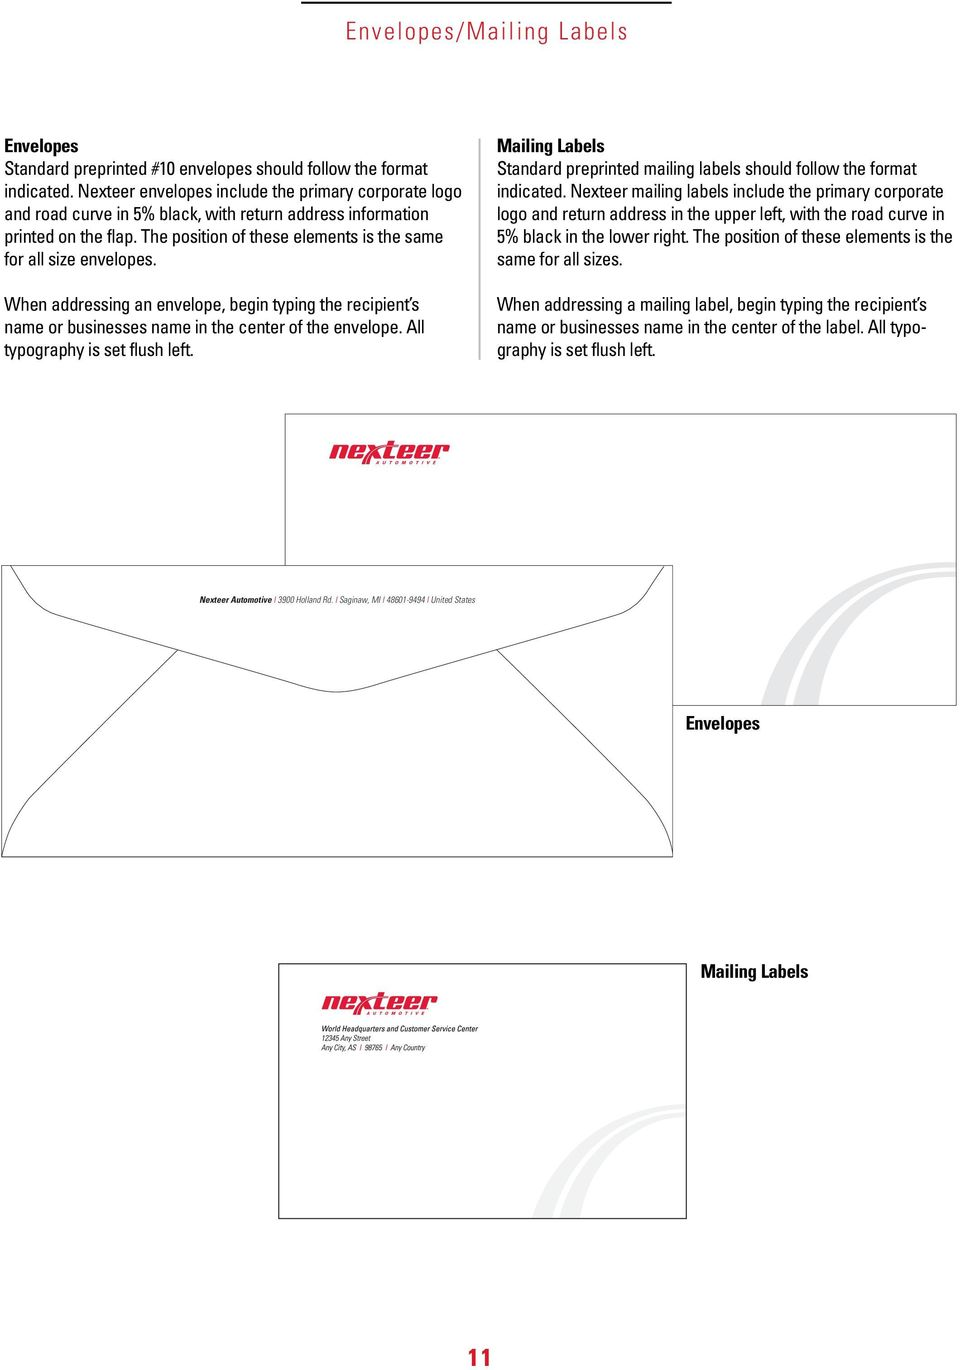 When addressing an envelope, begin typing the recipient s name or businesses name in the center of the envelope. All typography is set flush left.